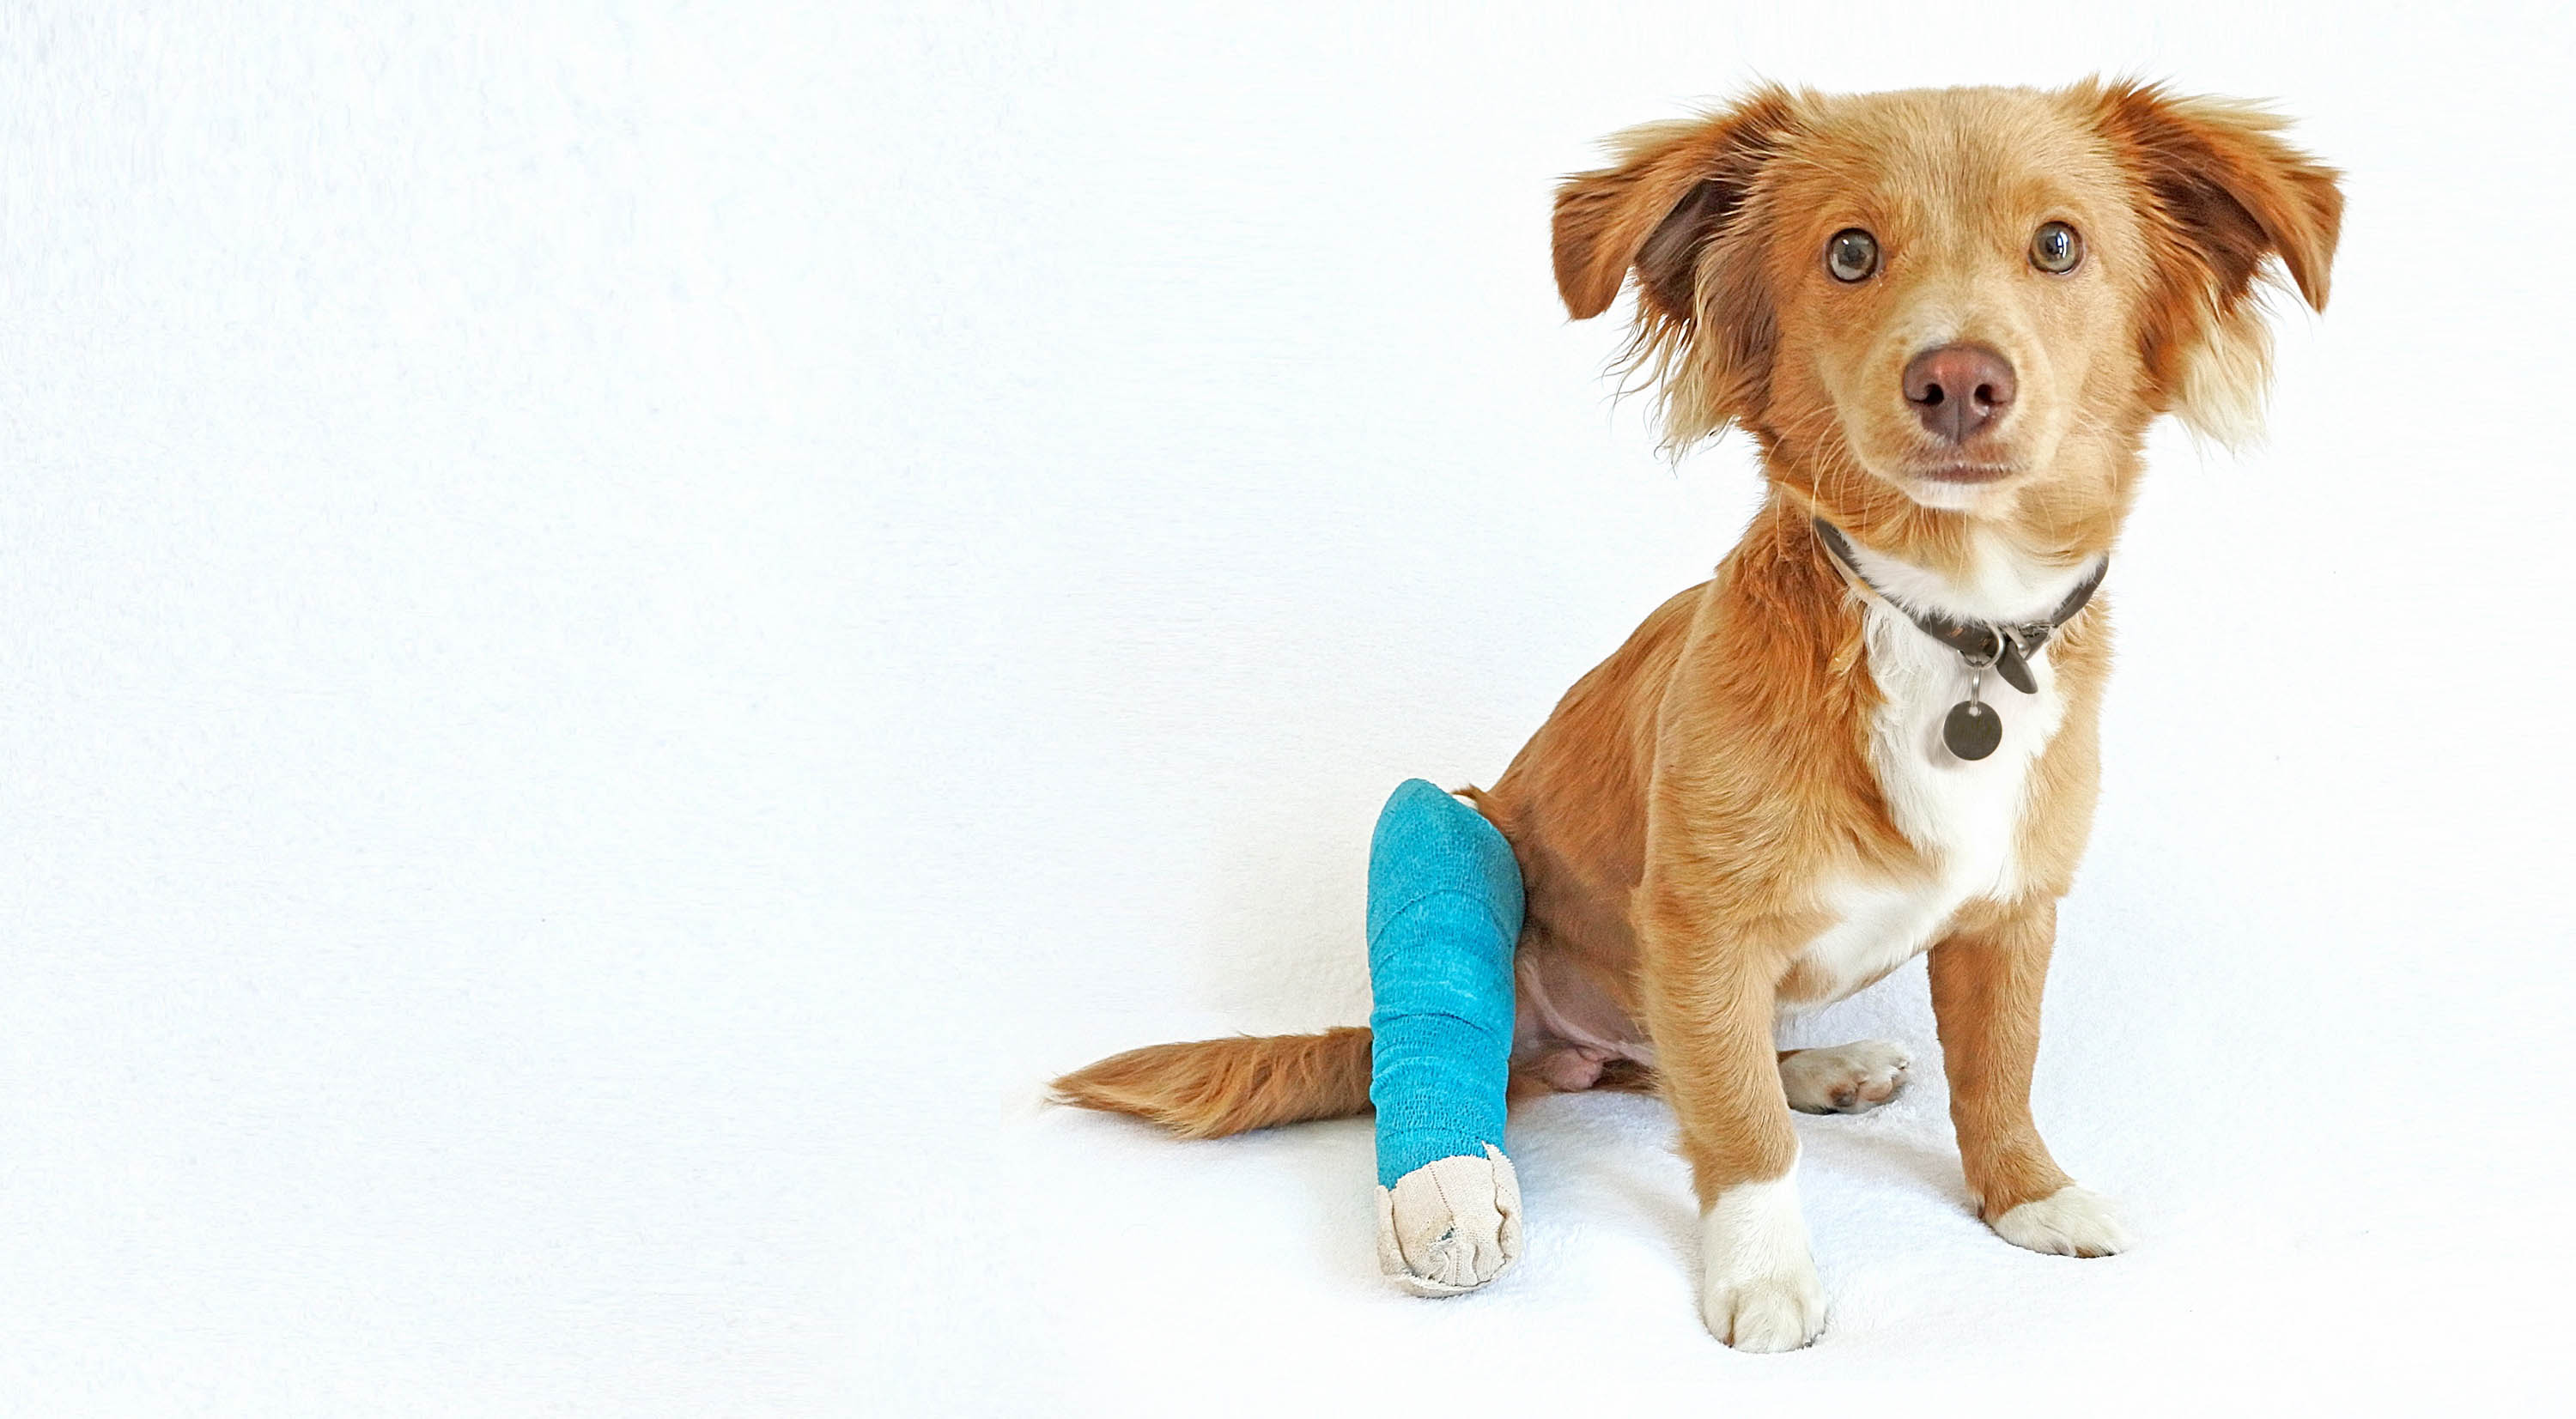 Cute dog with a cast